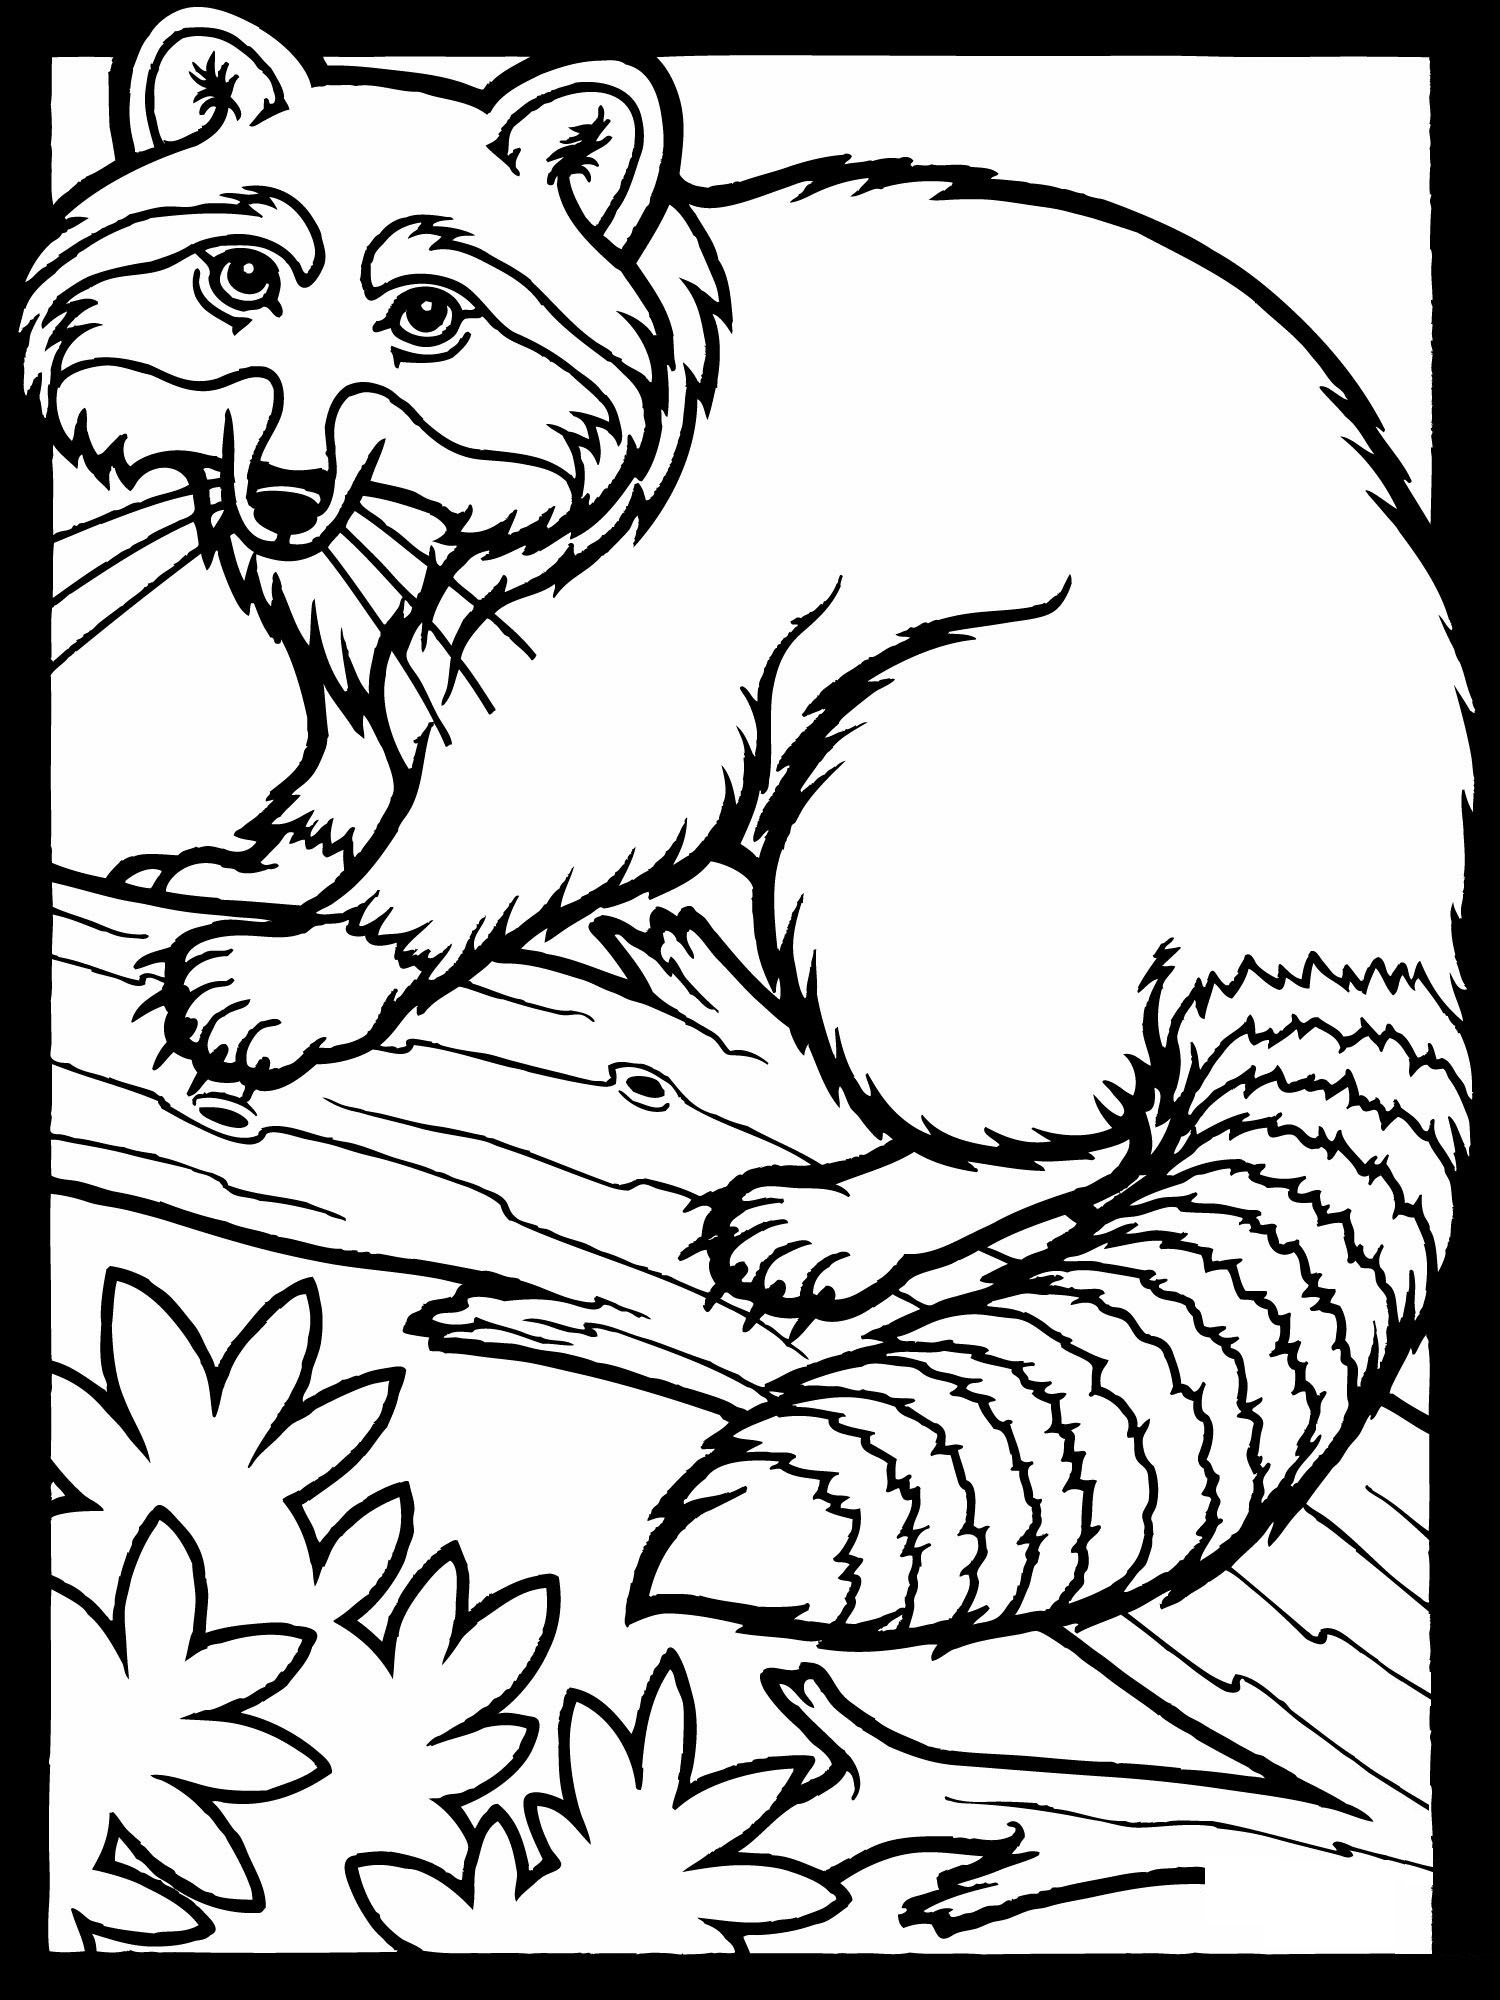 Free Printable Raccoon Coloring Pages For Kids Coloring Pages Printable Free